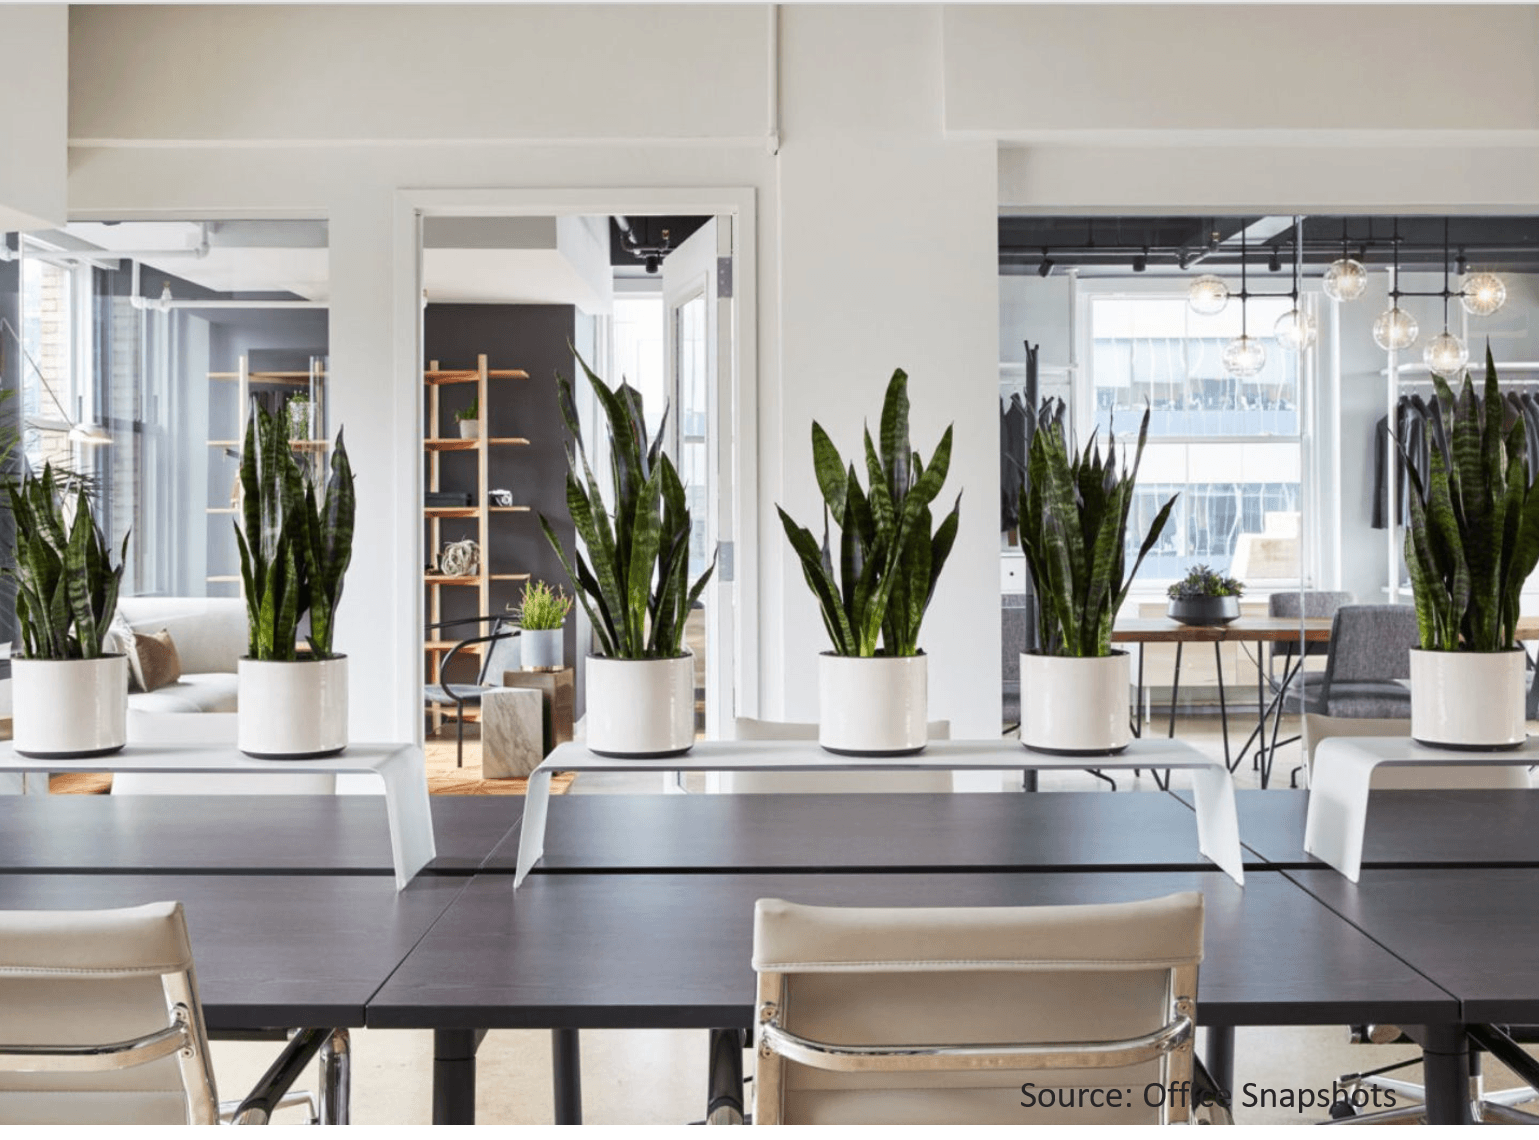 Sanke-plants-in-white-pots-in-office